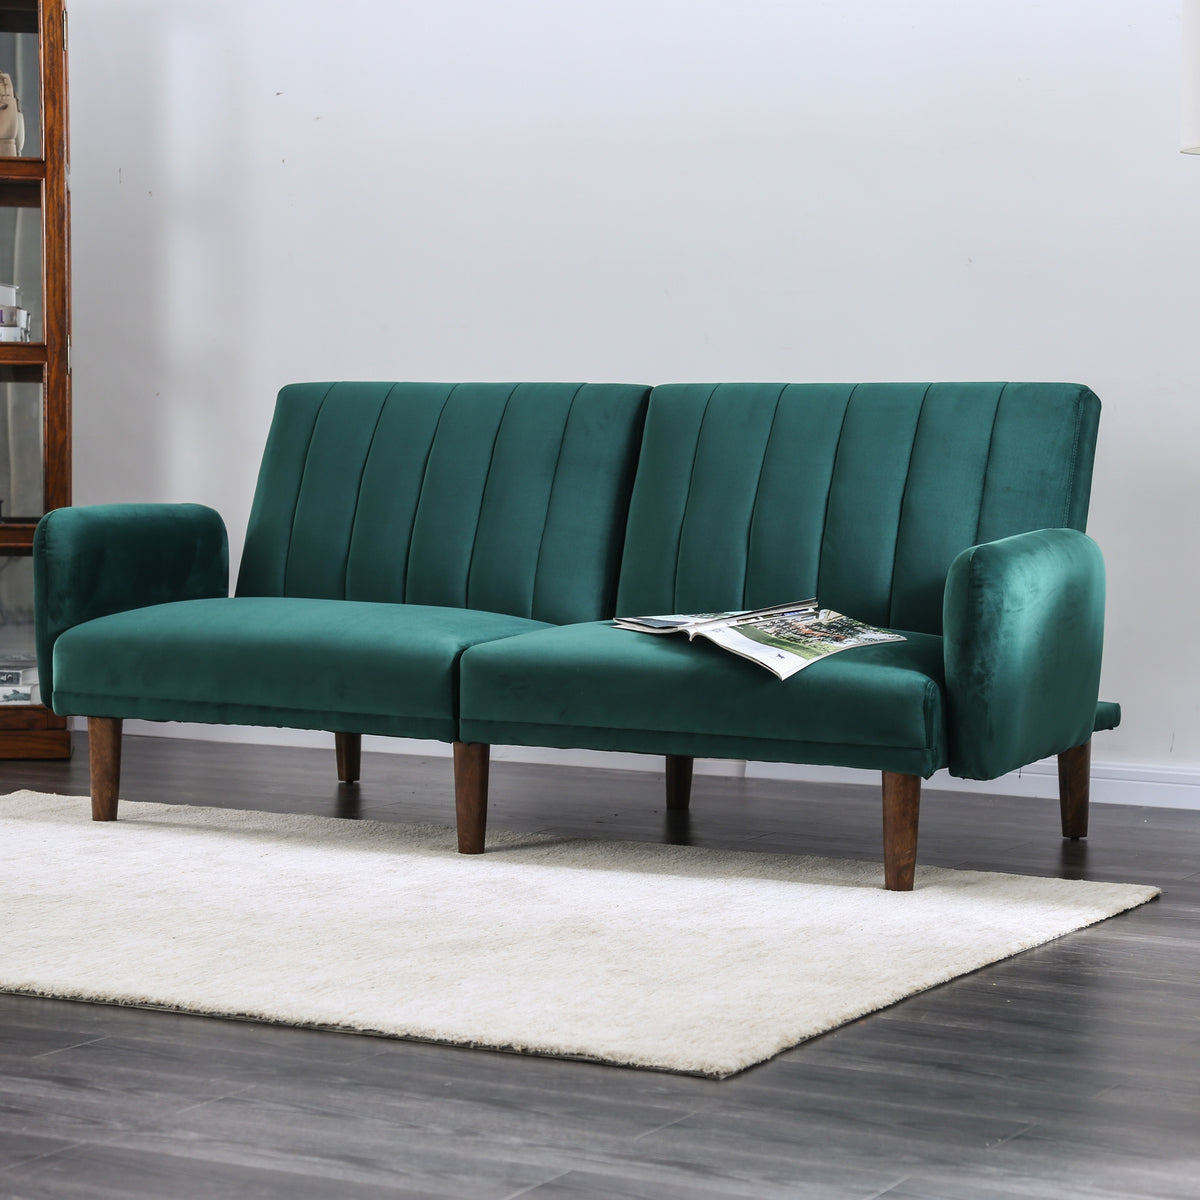 Surprising Trend Alert Small Space Sofas Sofa Shack Caraccident5 Cool Chair Designs And Ideas Caraccident5Info